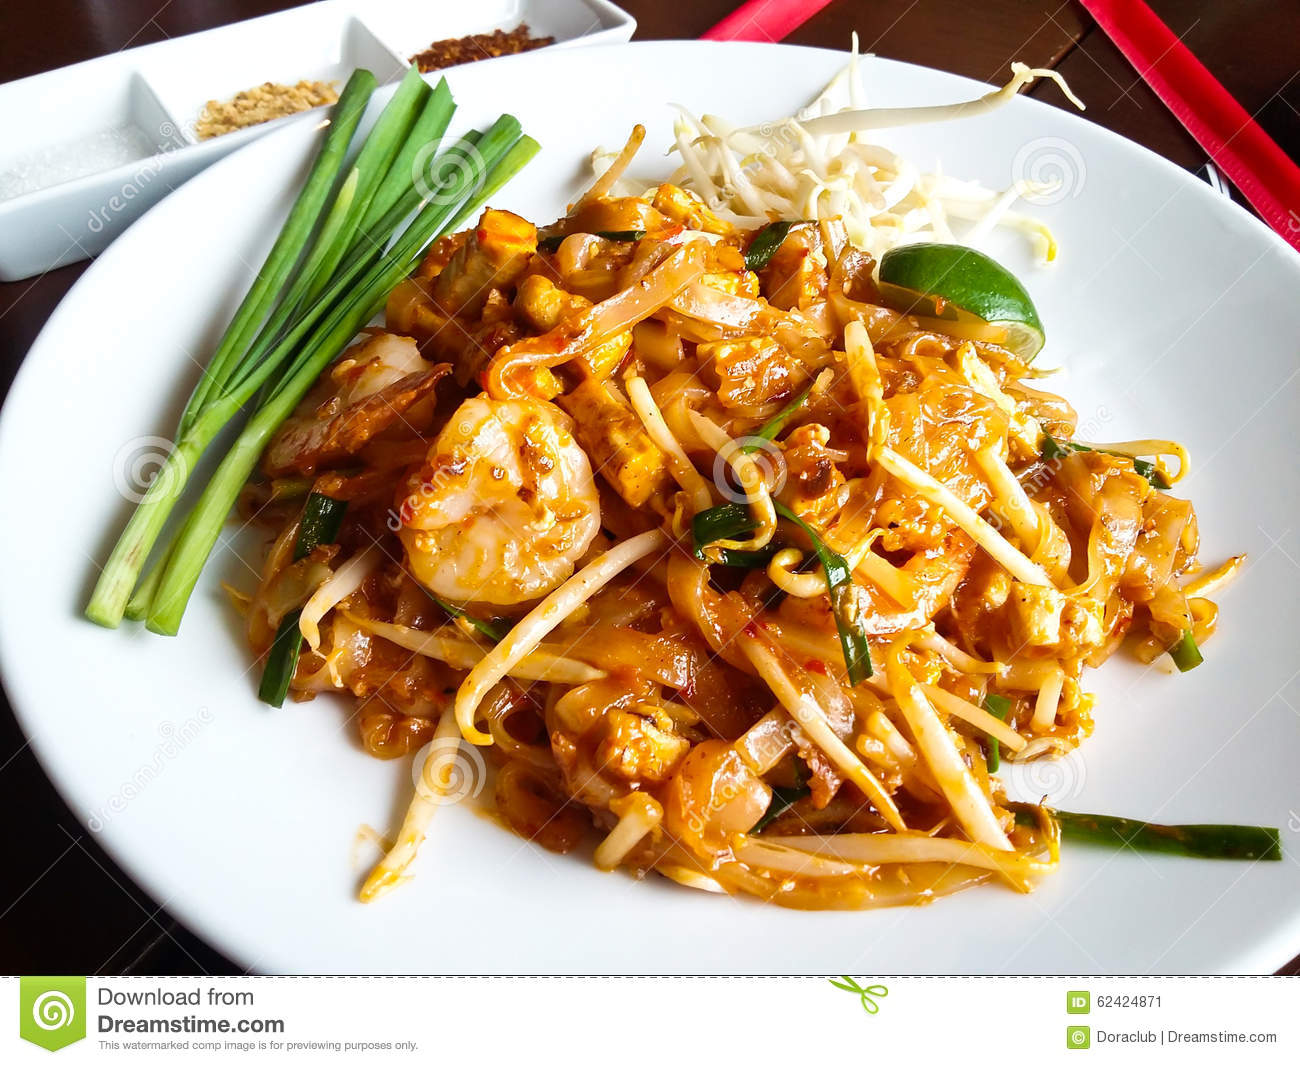 Thai food, stir-fried rice noodles